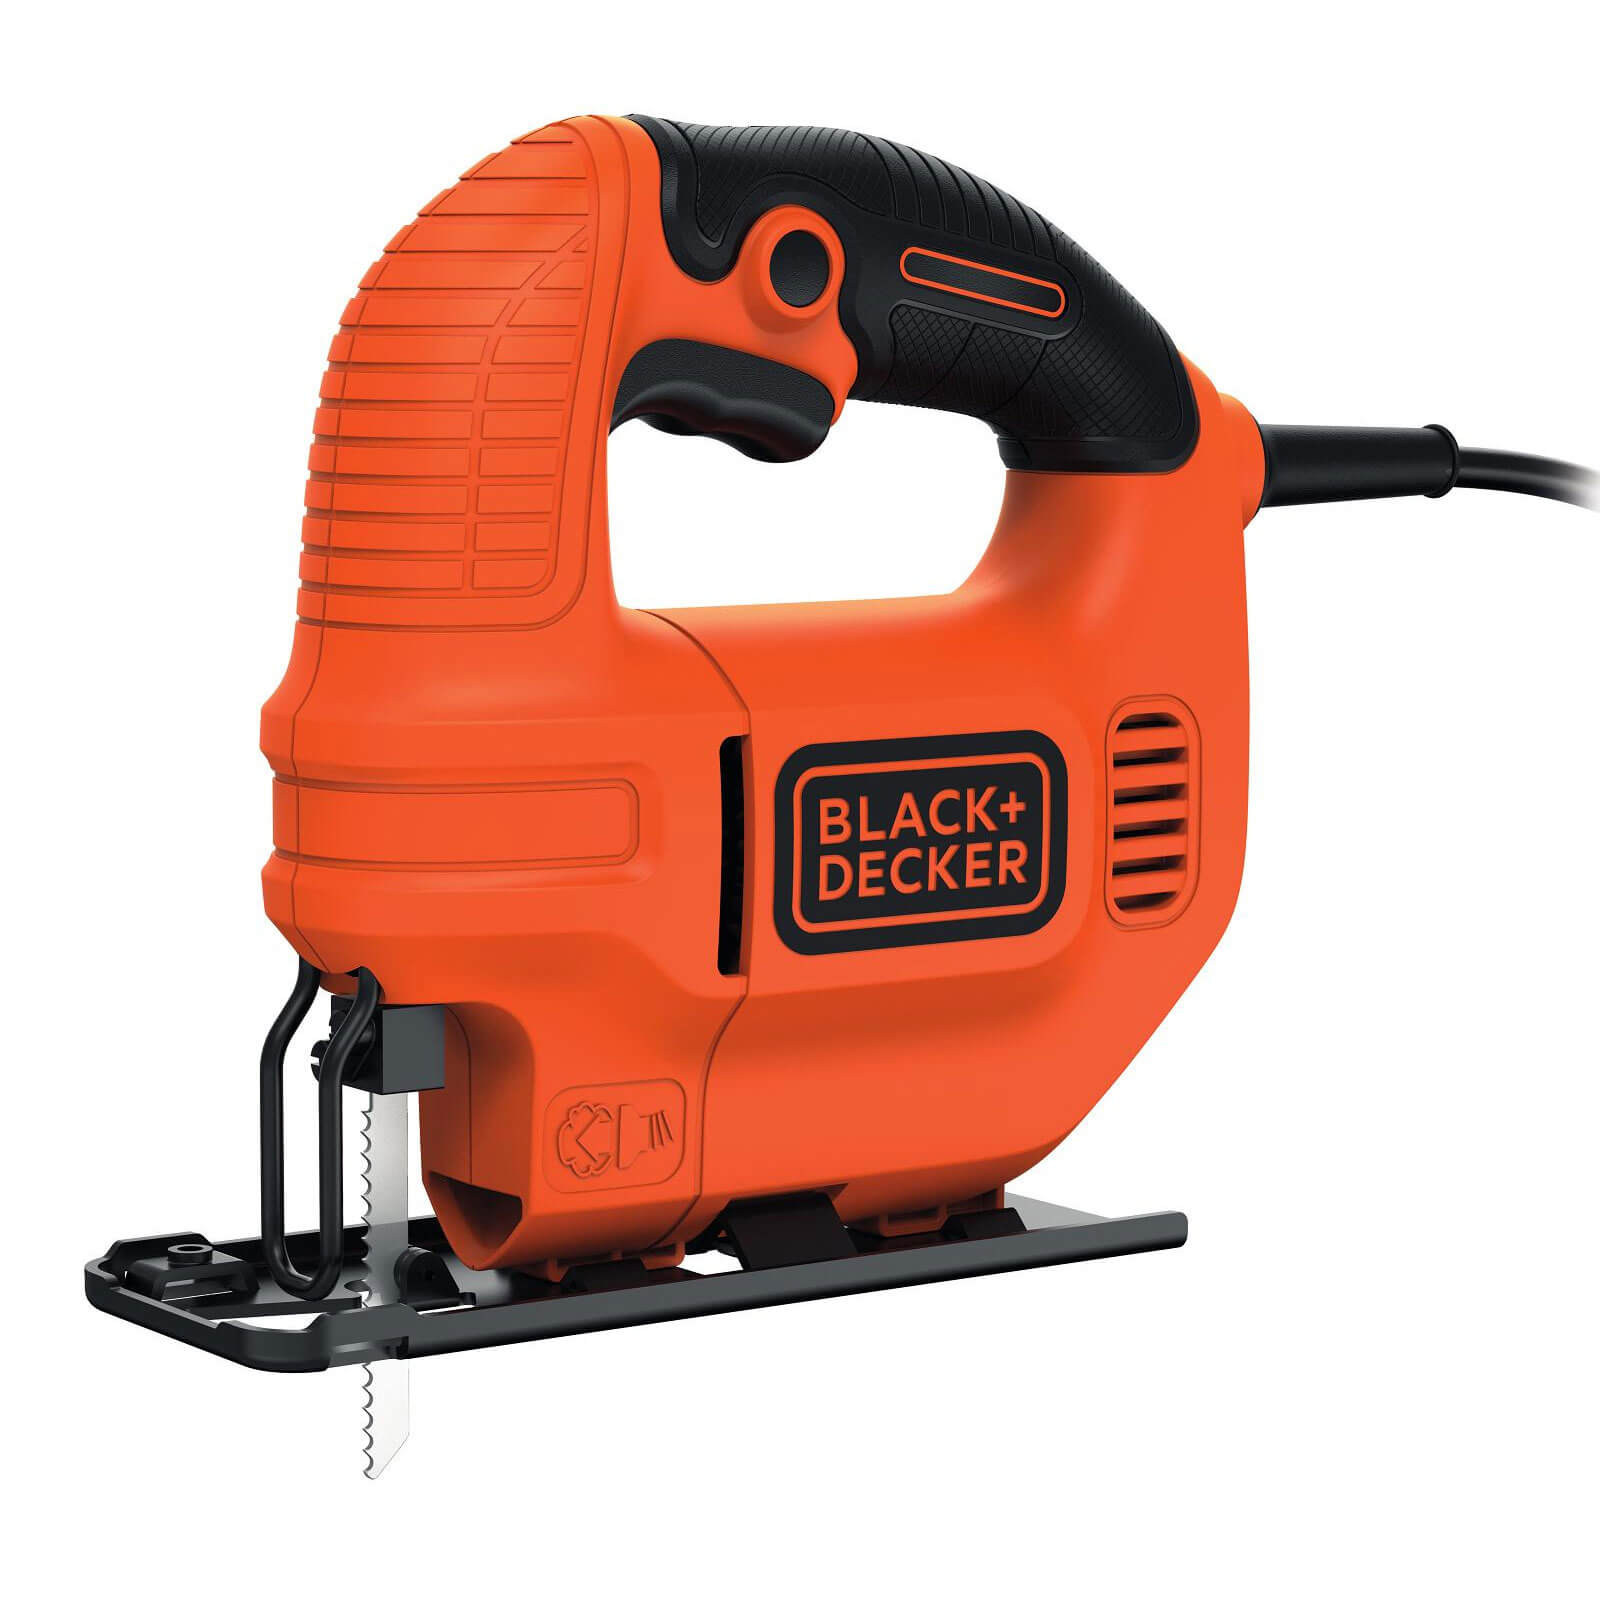 Image of Black and Decker KS501 Jigsaw 240v